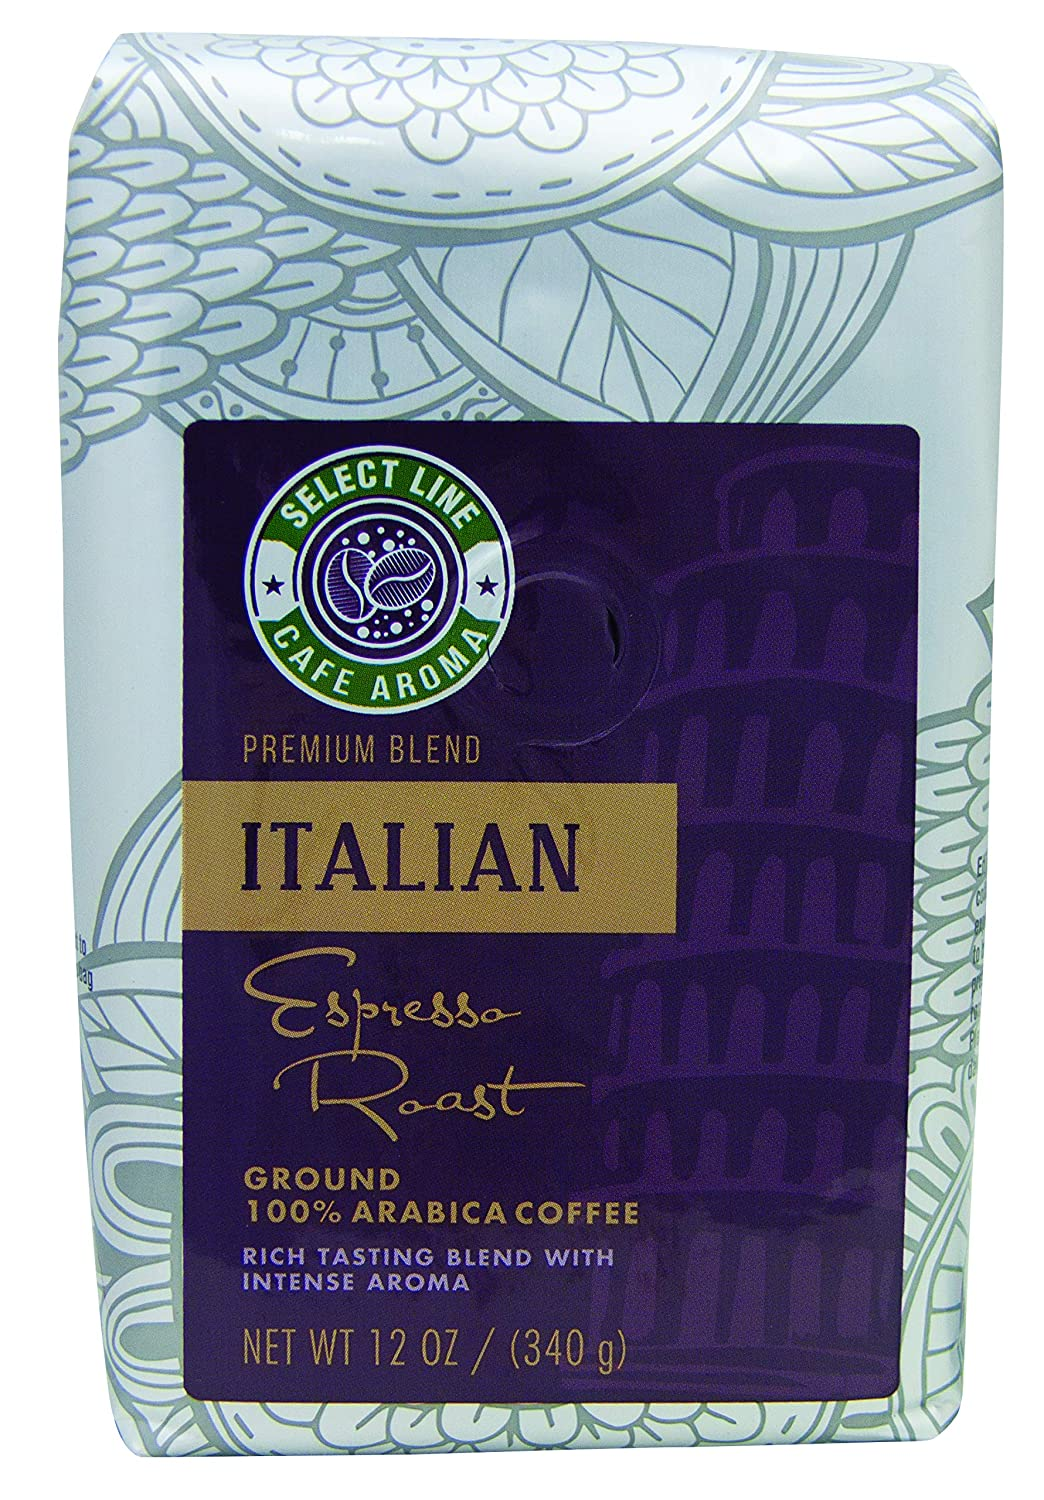 Bold Italian Roast Ground Coffee - 12 oz Bag, from Aroma Select, Premium, Gourmet Ground Coffee